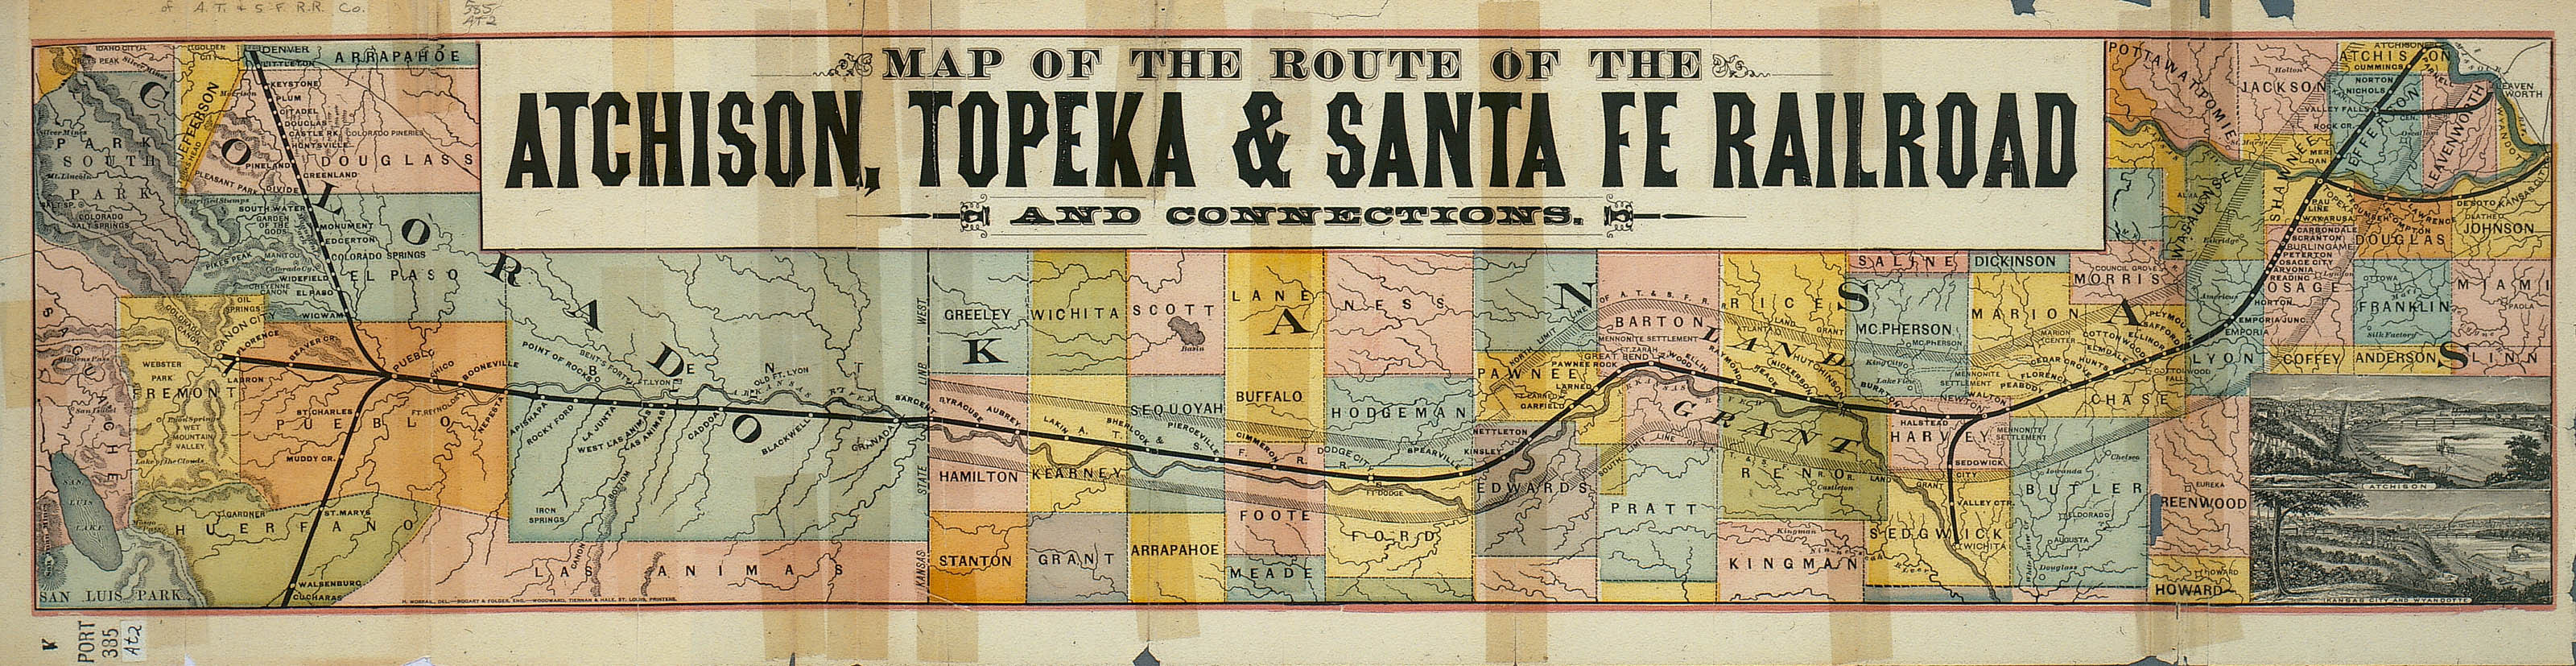 Map of the Atchison, Topeka & Santa Fe Railroad and connections ...